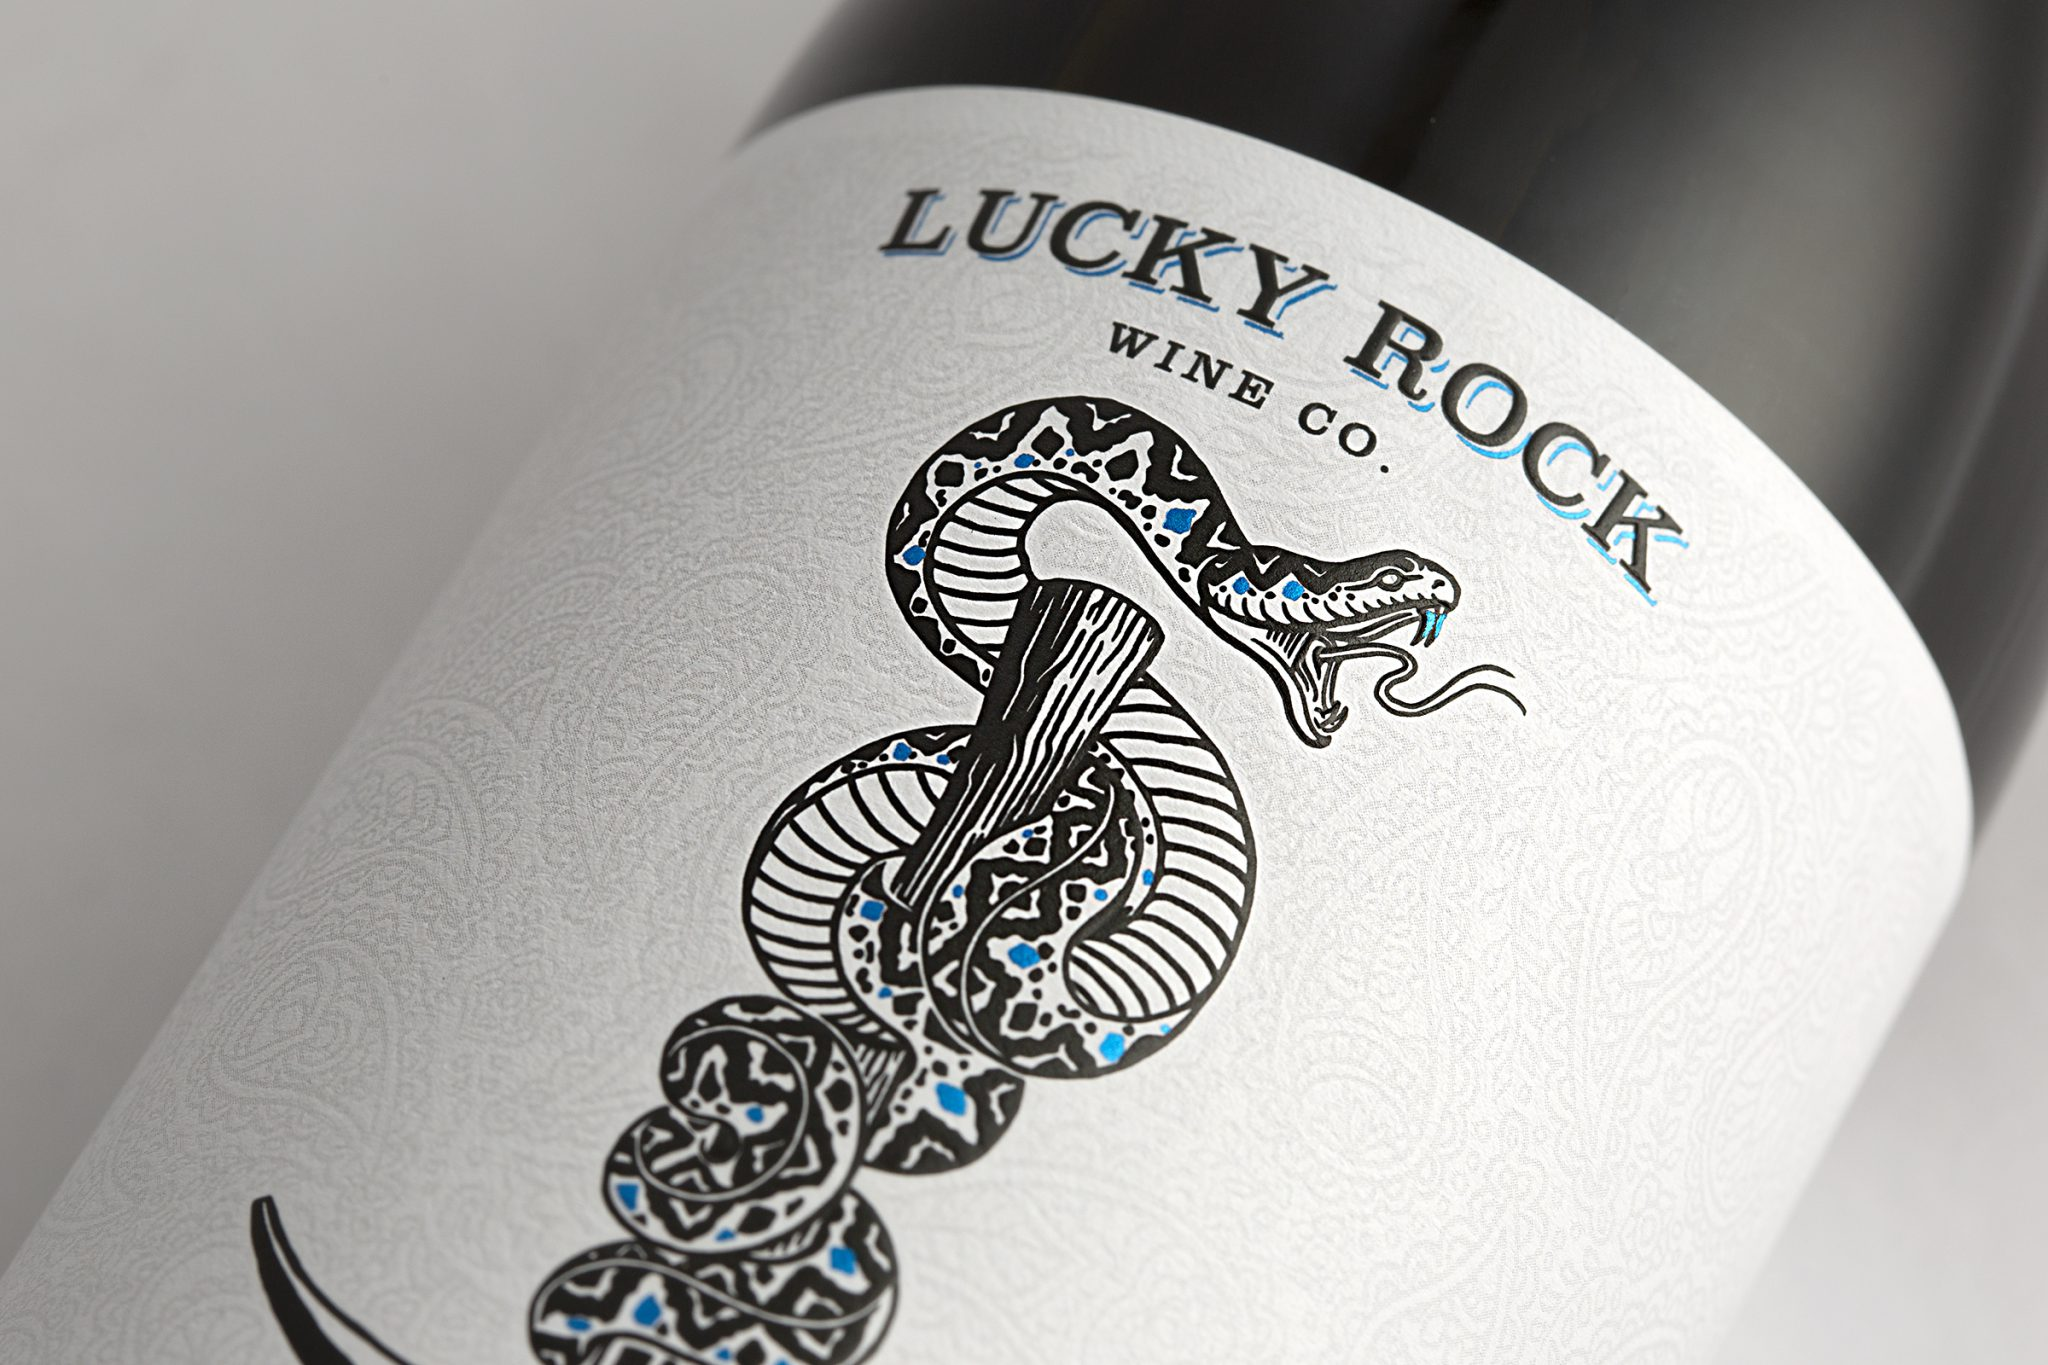 Lucky Rock Wine Co. wine label design by Vertical in Sonoma County